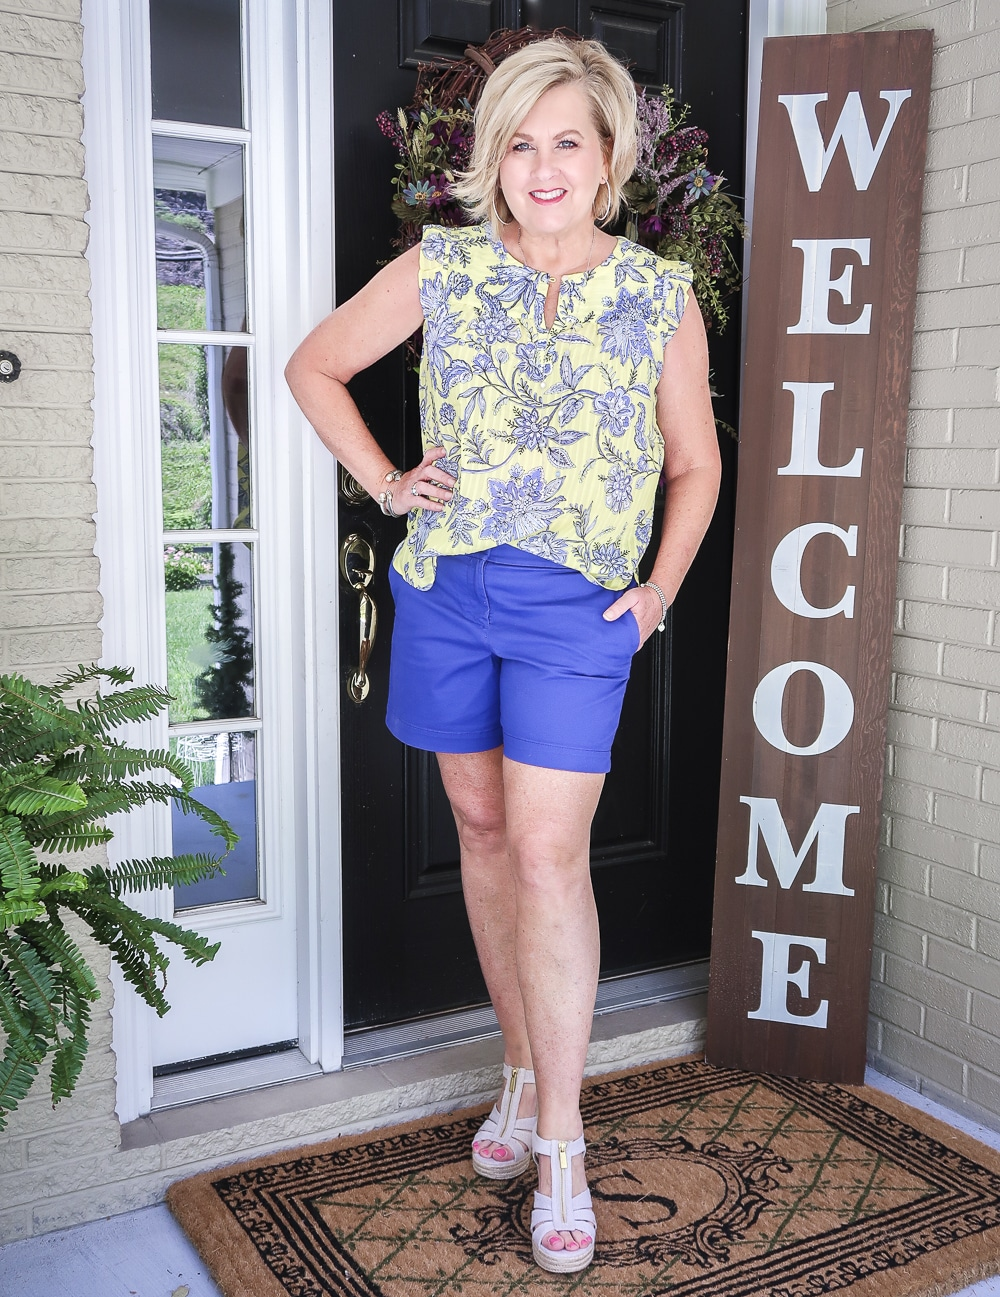 Fashion Blogger 50 Is Not Old wearing a yellow top with a blue floral design, azure blue shorts, and platform espadrille wedge shoes by Micheal Kors